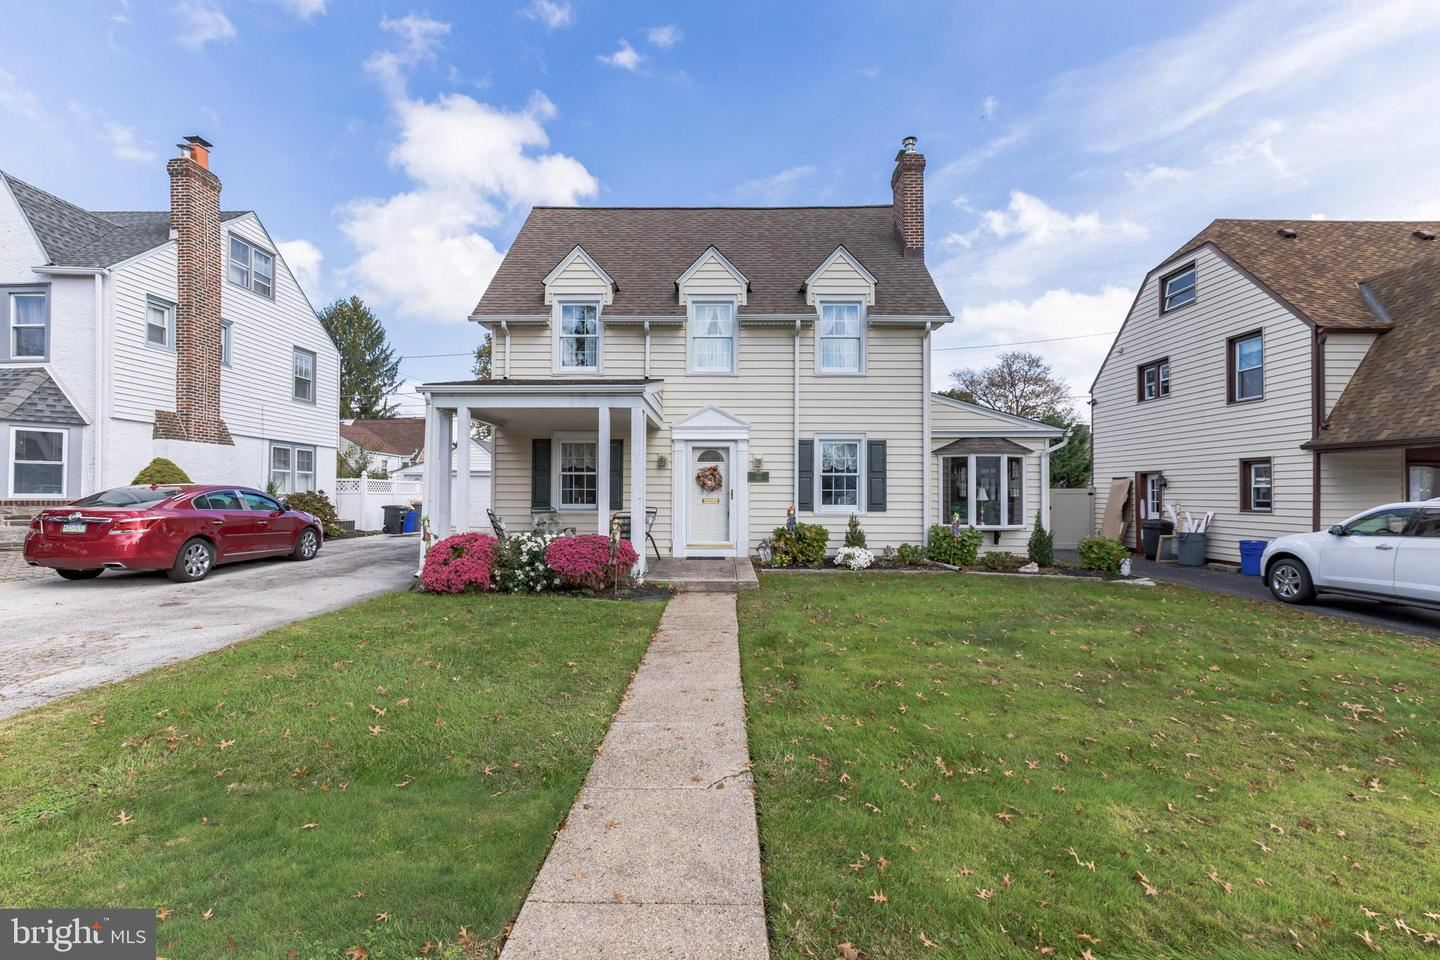 Photo of 1021 LINDALE AVE, DREXEL HILL, PA 19026 (MLS # PADE2009892)